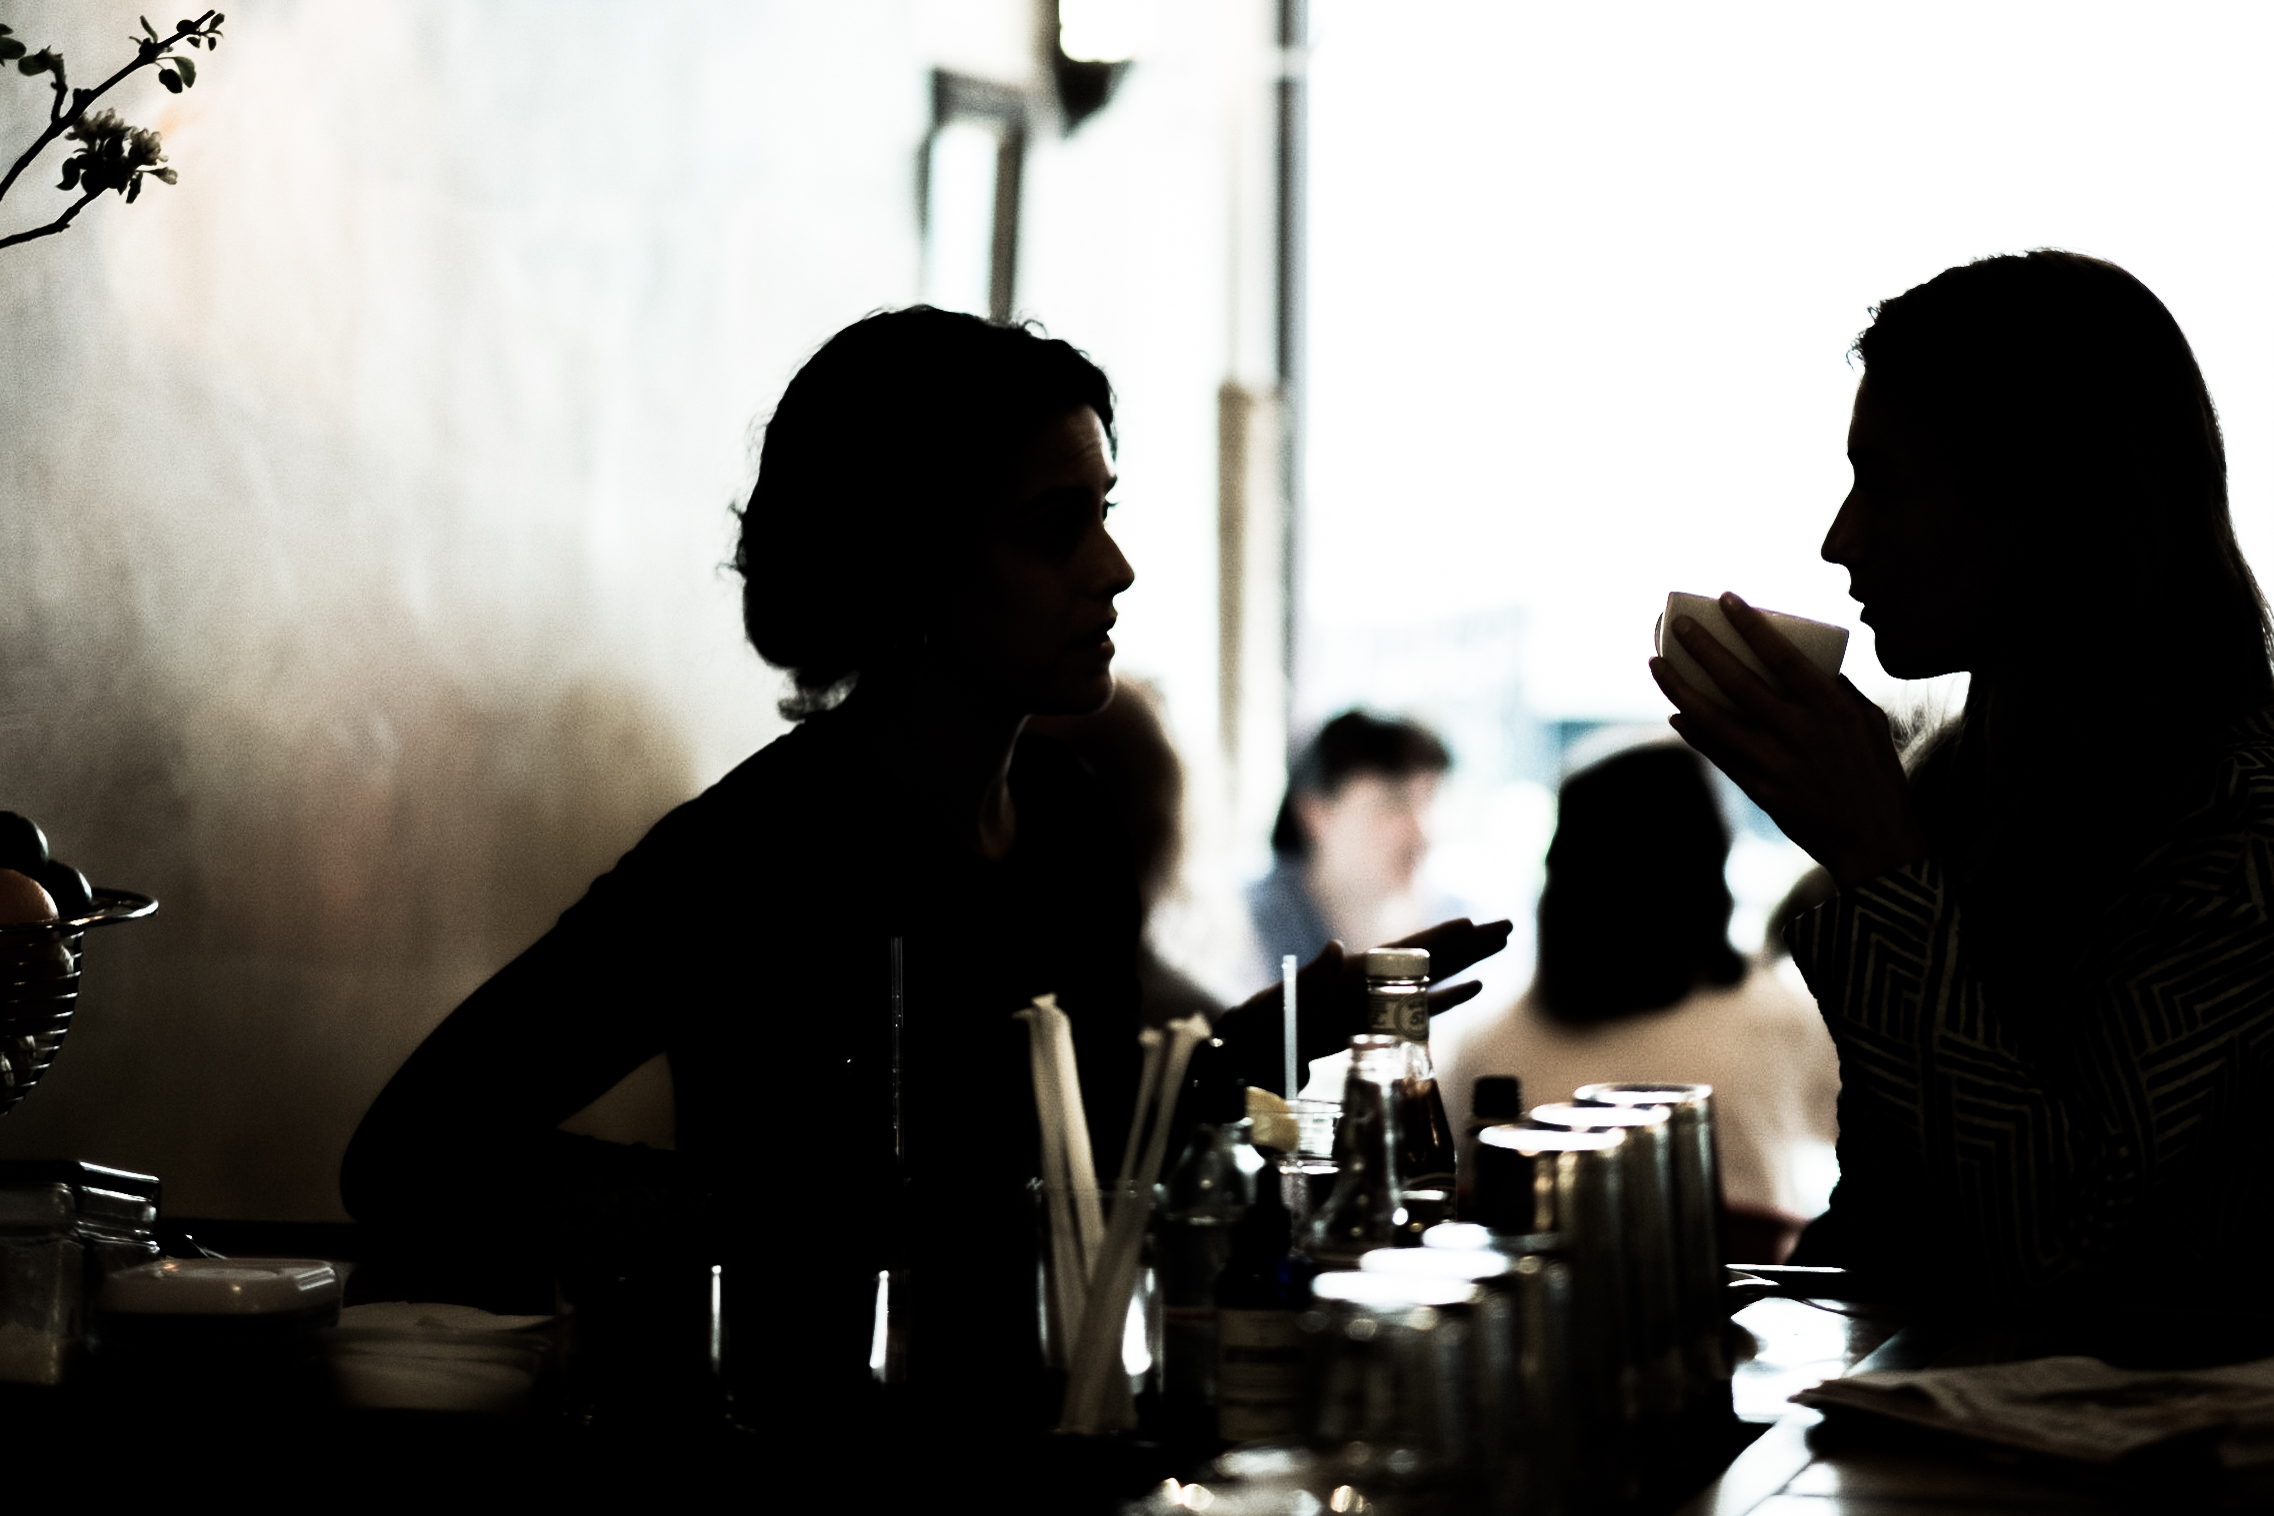 Silhouette of two people chatting at the bar